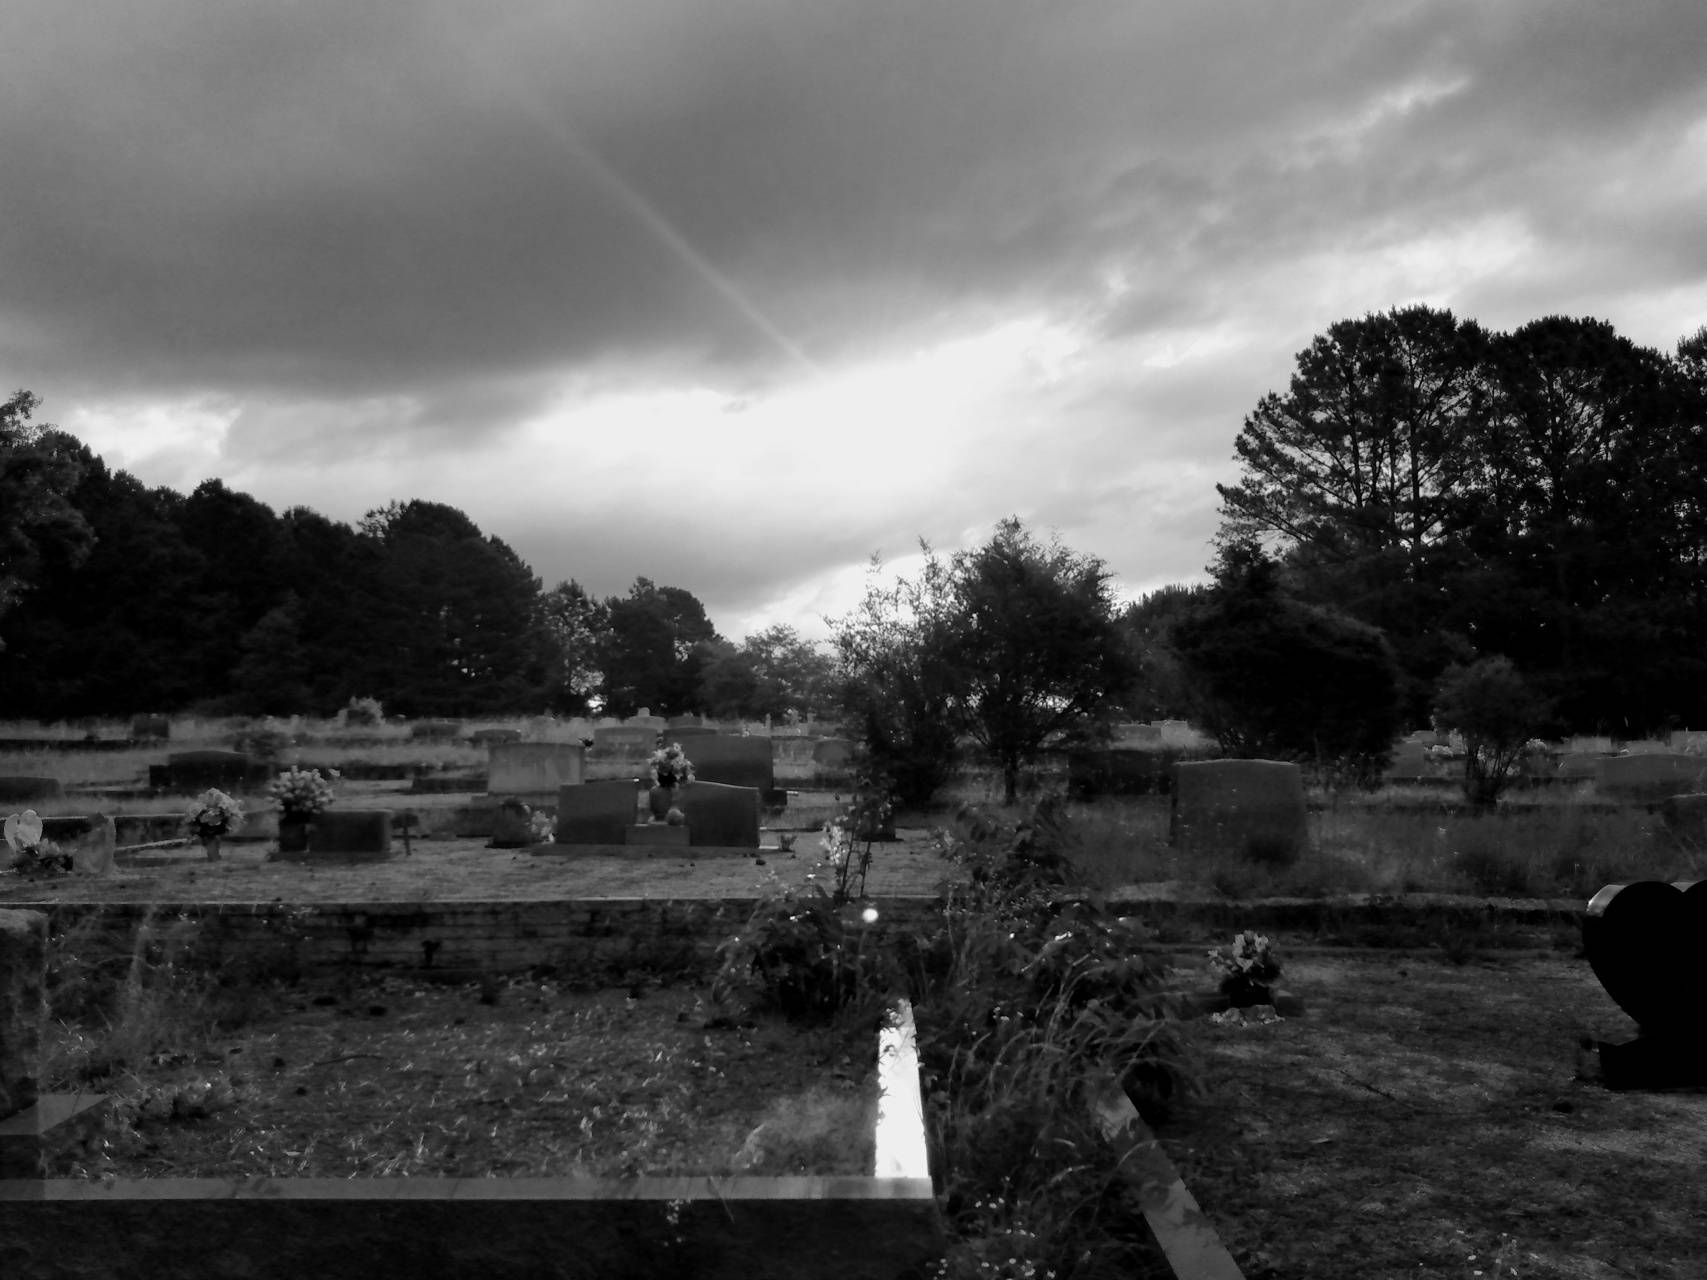 Ray of the grave